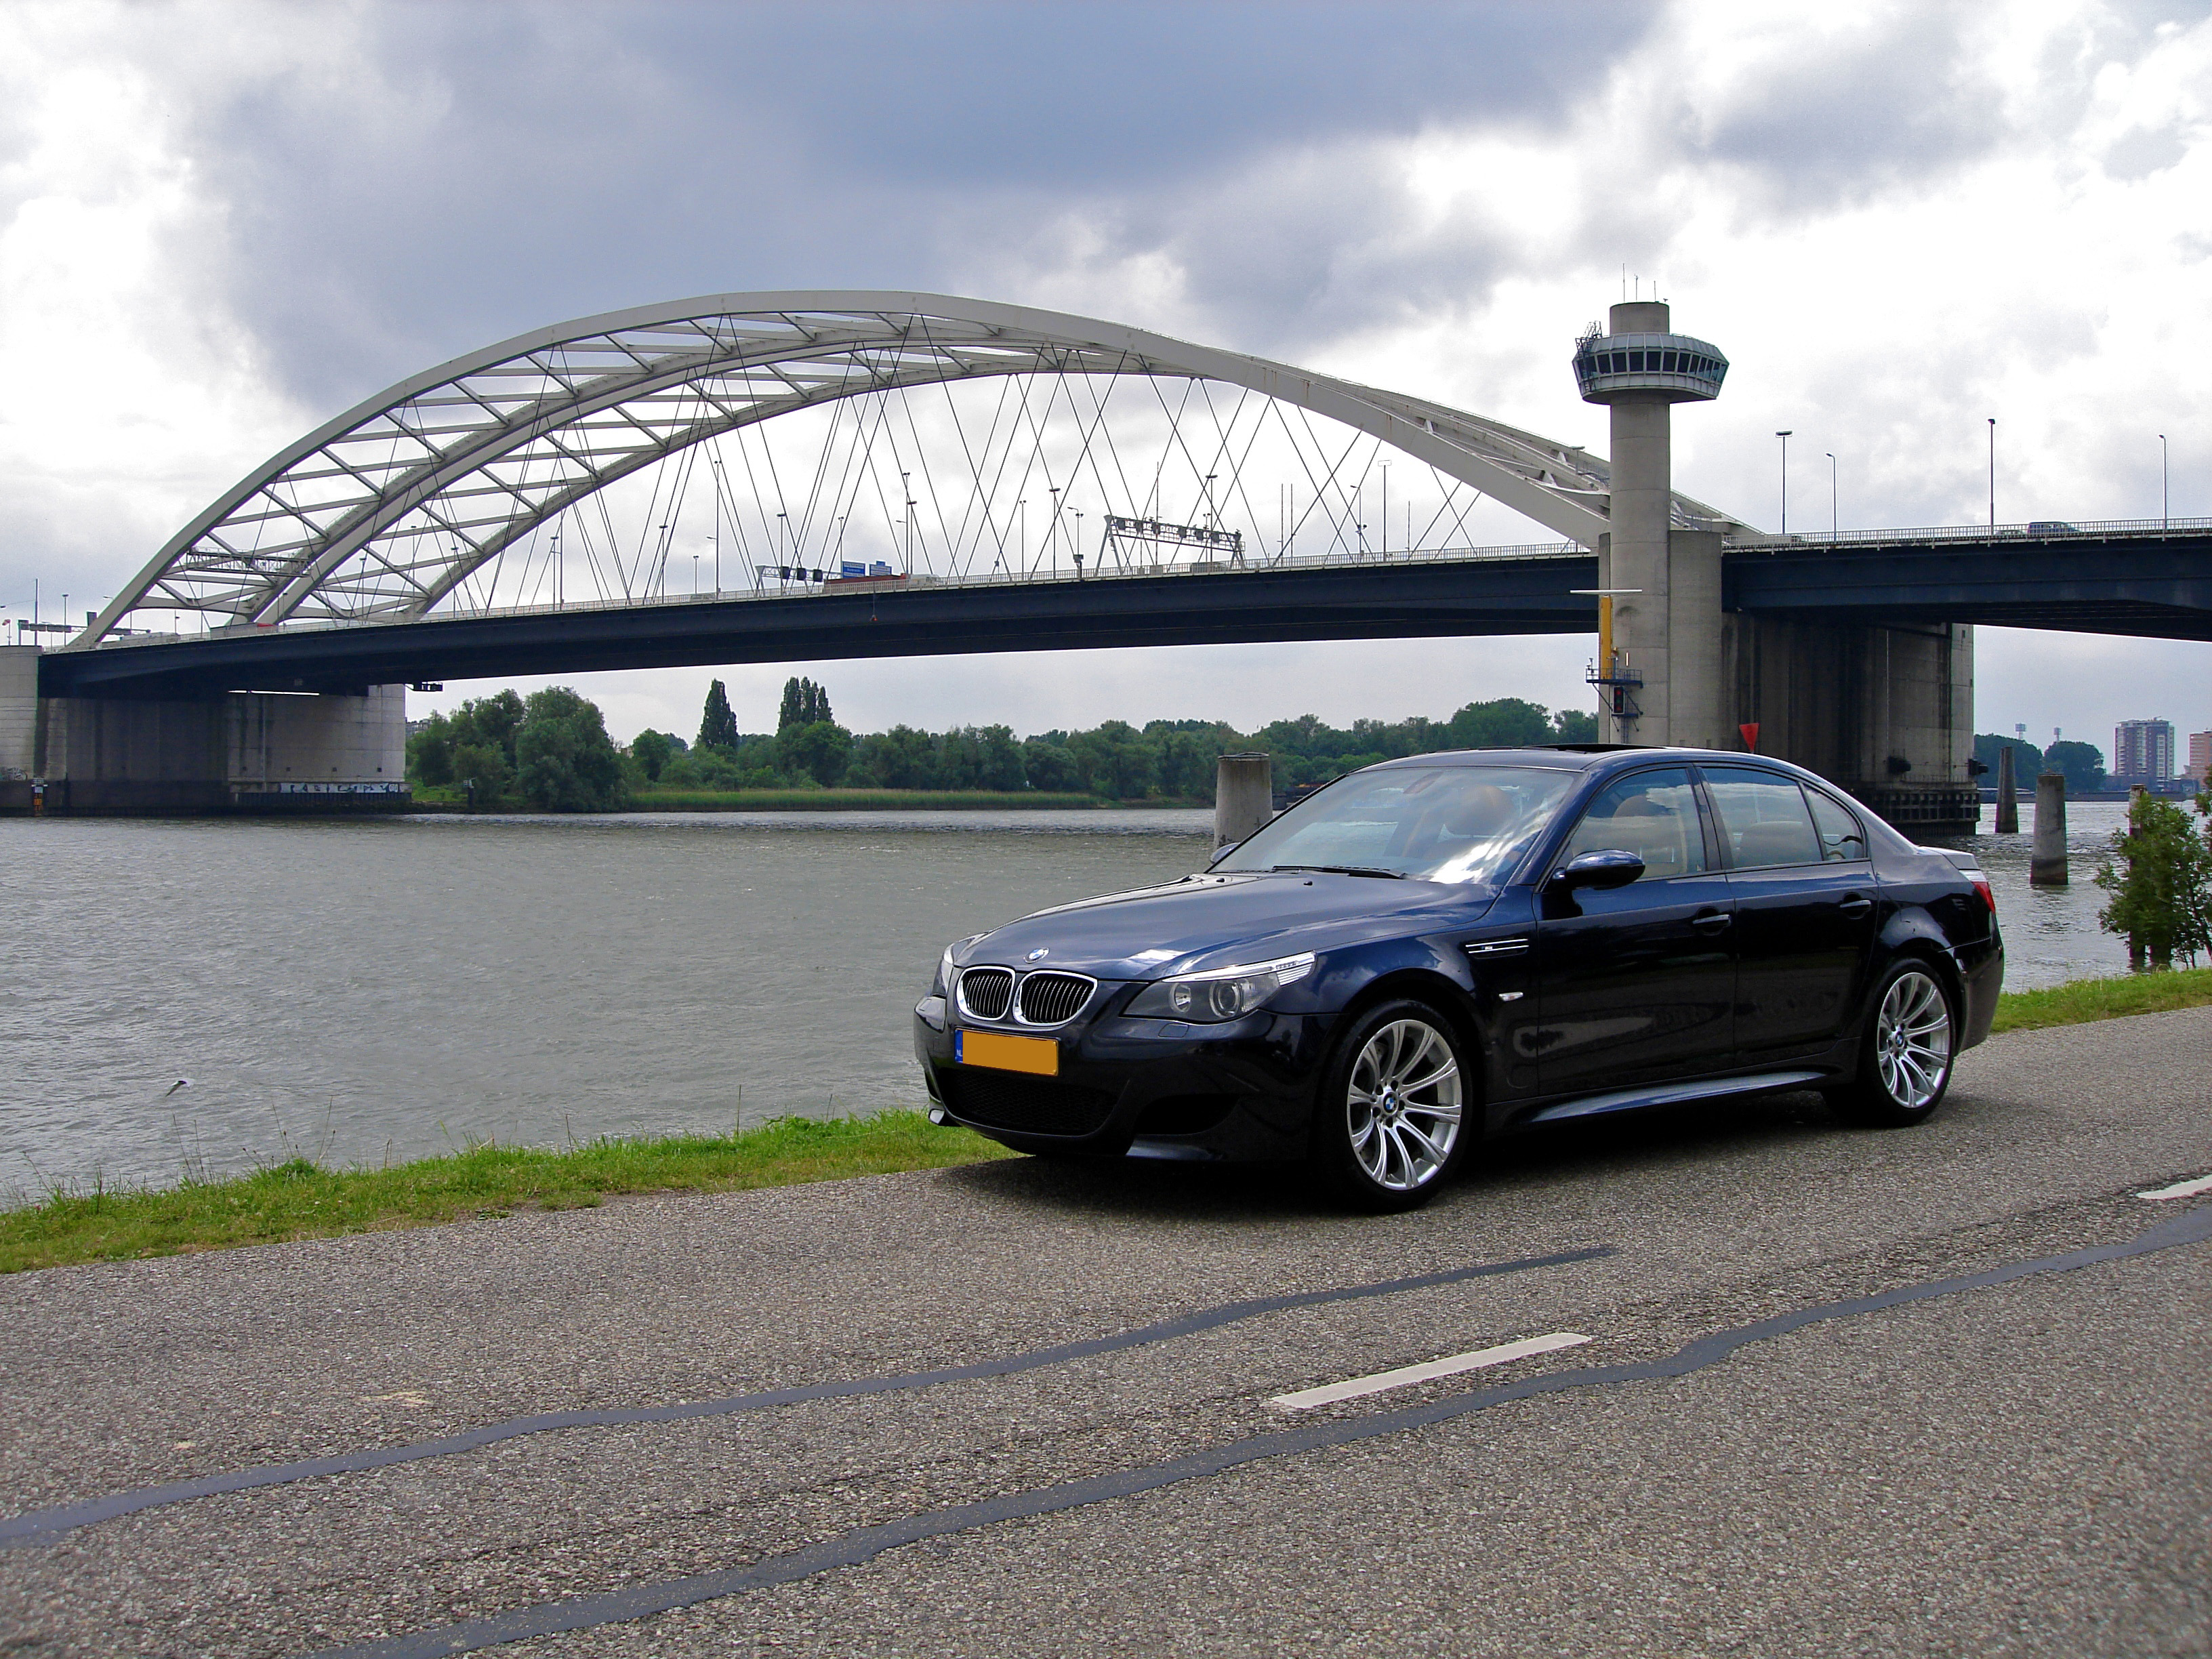 Pictures of my car + ideas for future mods - BMW M5 Forum and M6 Forums